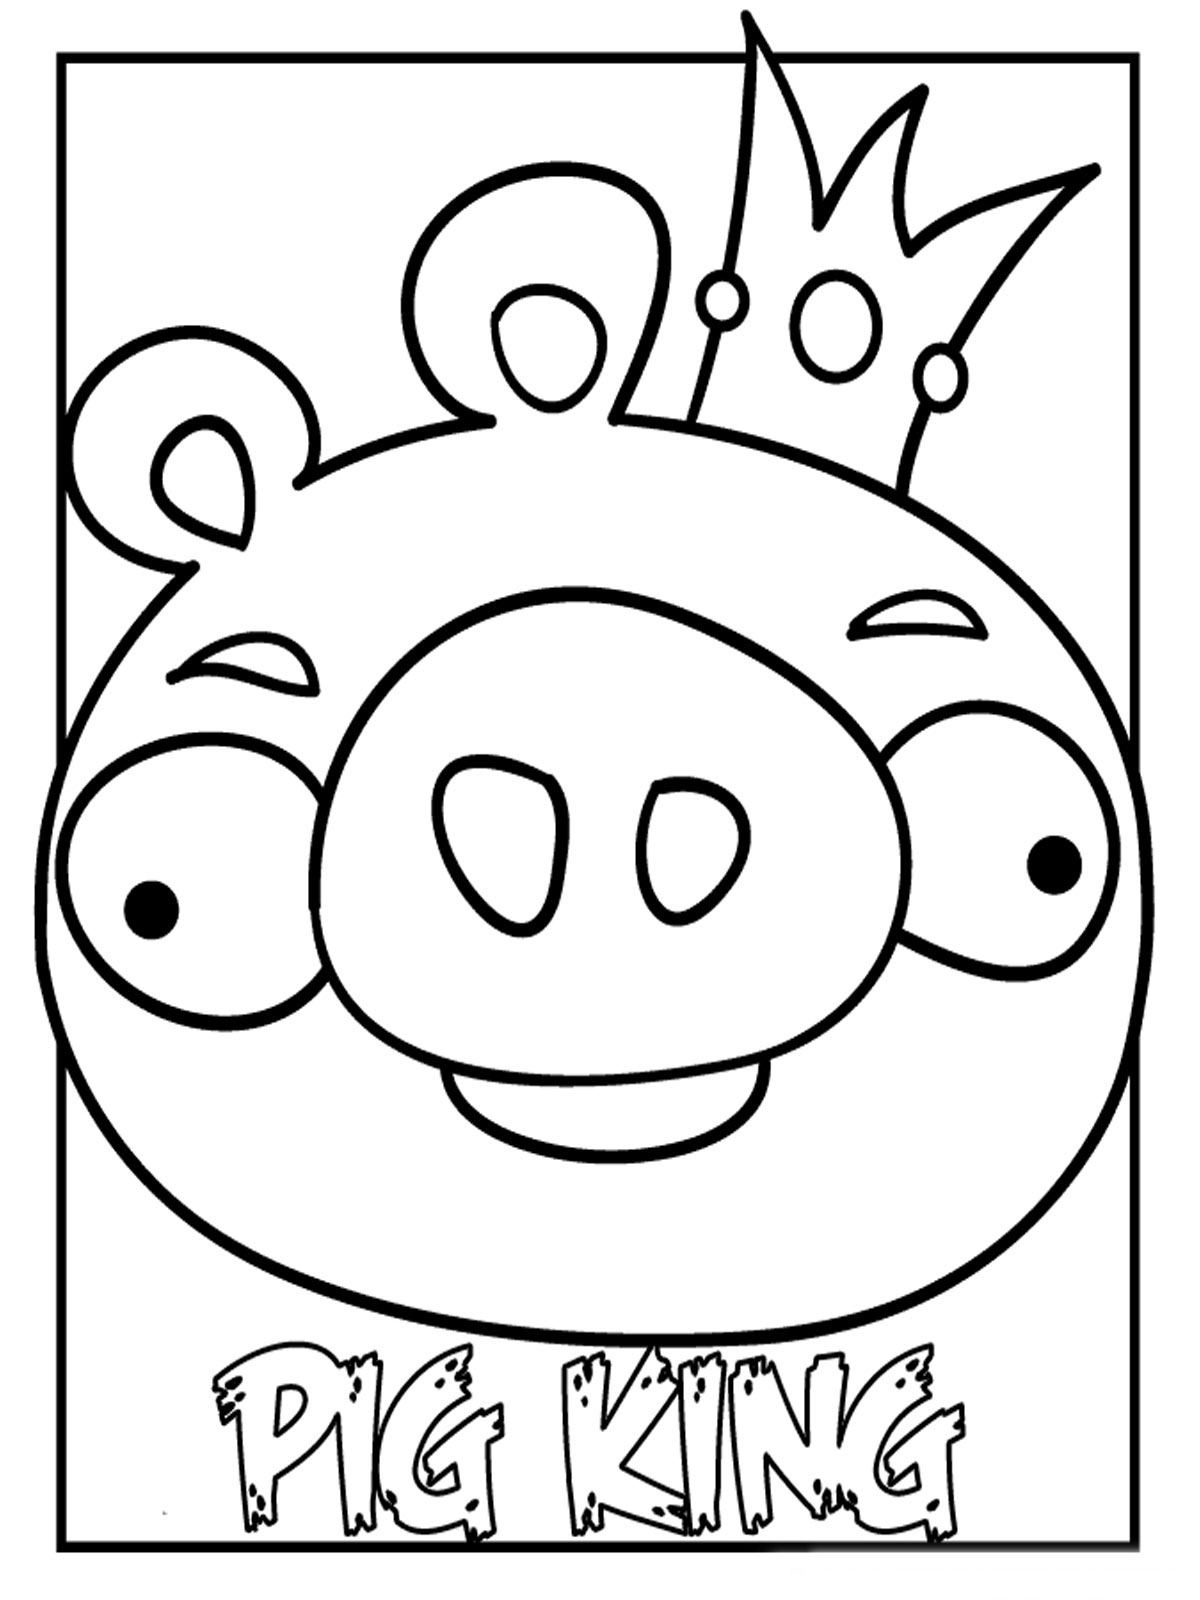 Pig King Bird Coloring Pages Angry Birds Pigs Space Coloring Pages [ 1600 x 1200 Pixel ]